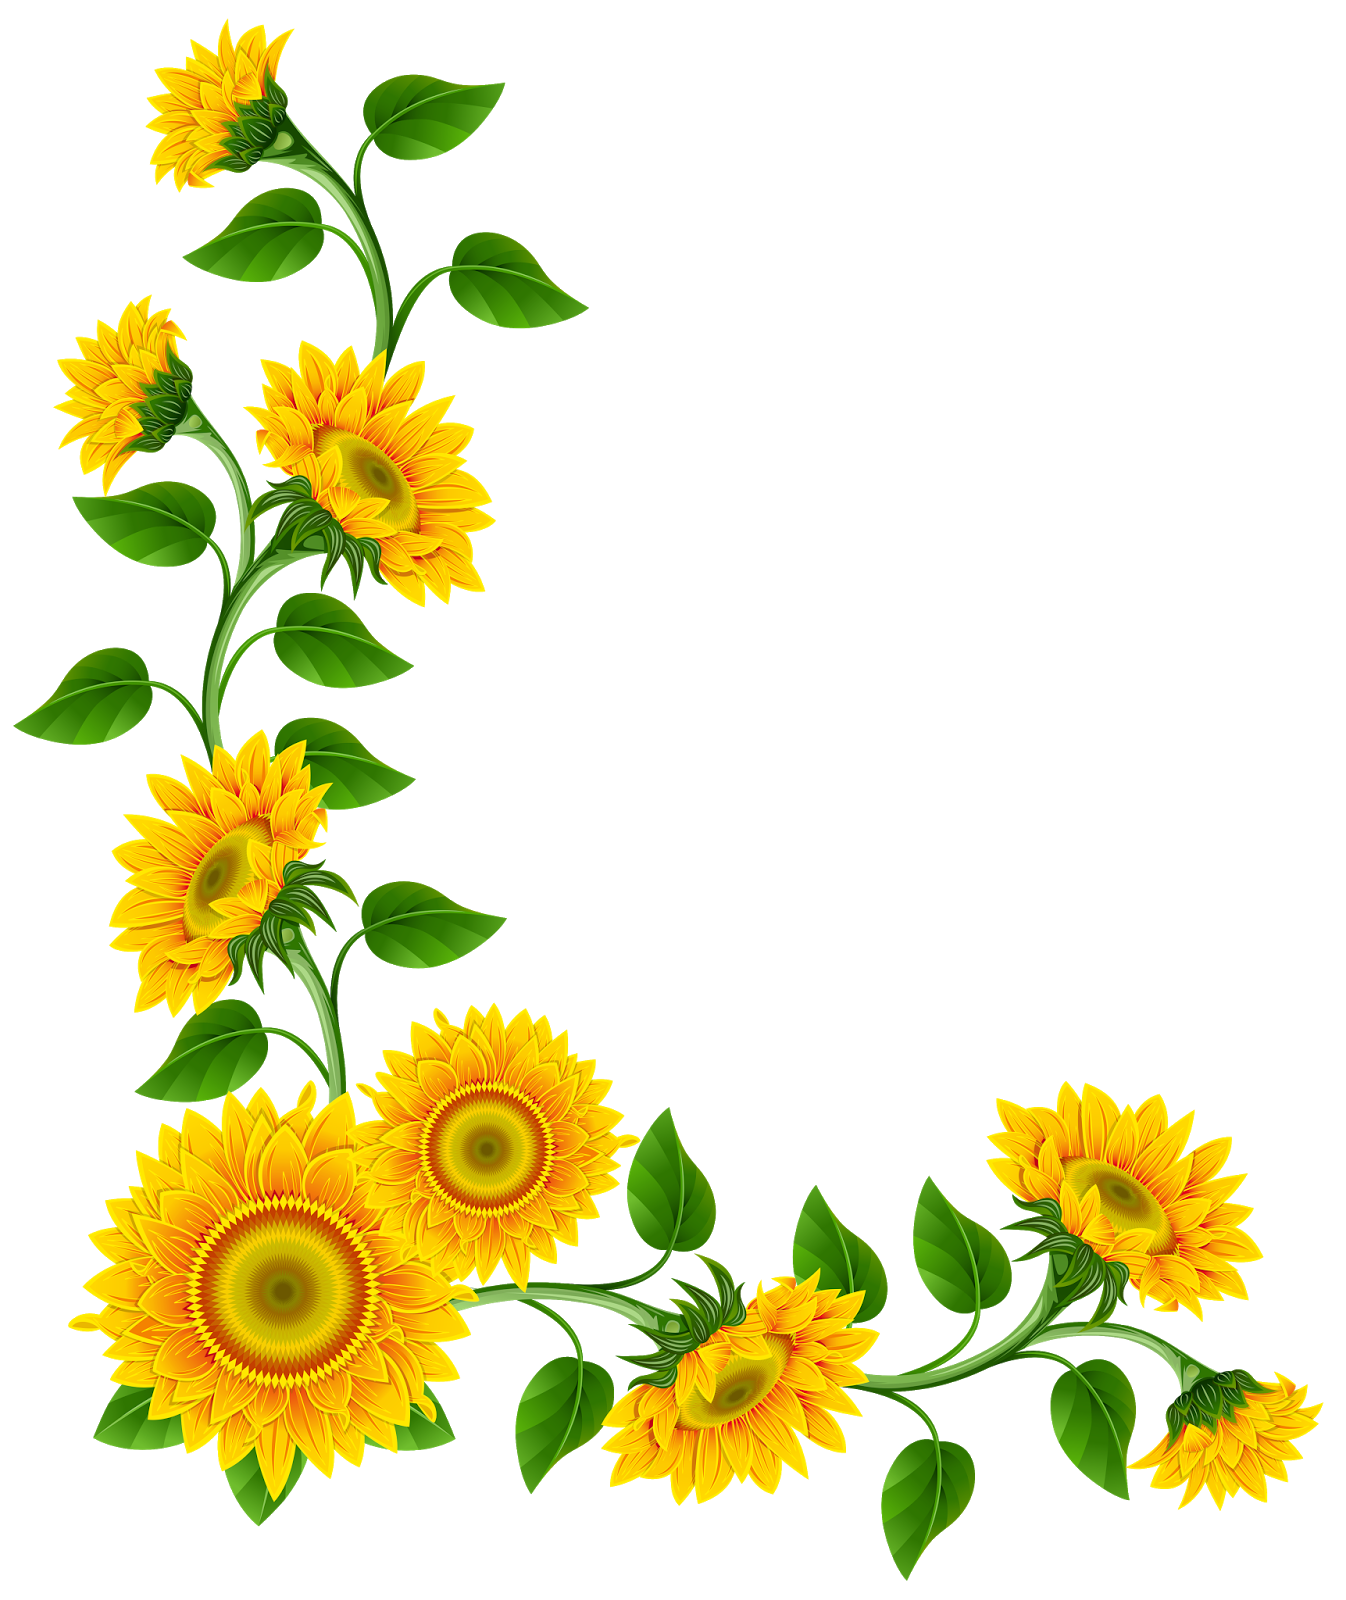 clip art borders sunflowers - photo #4